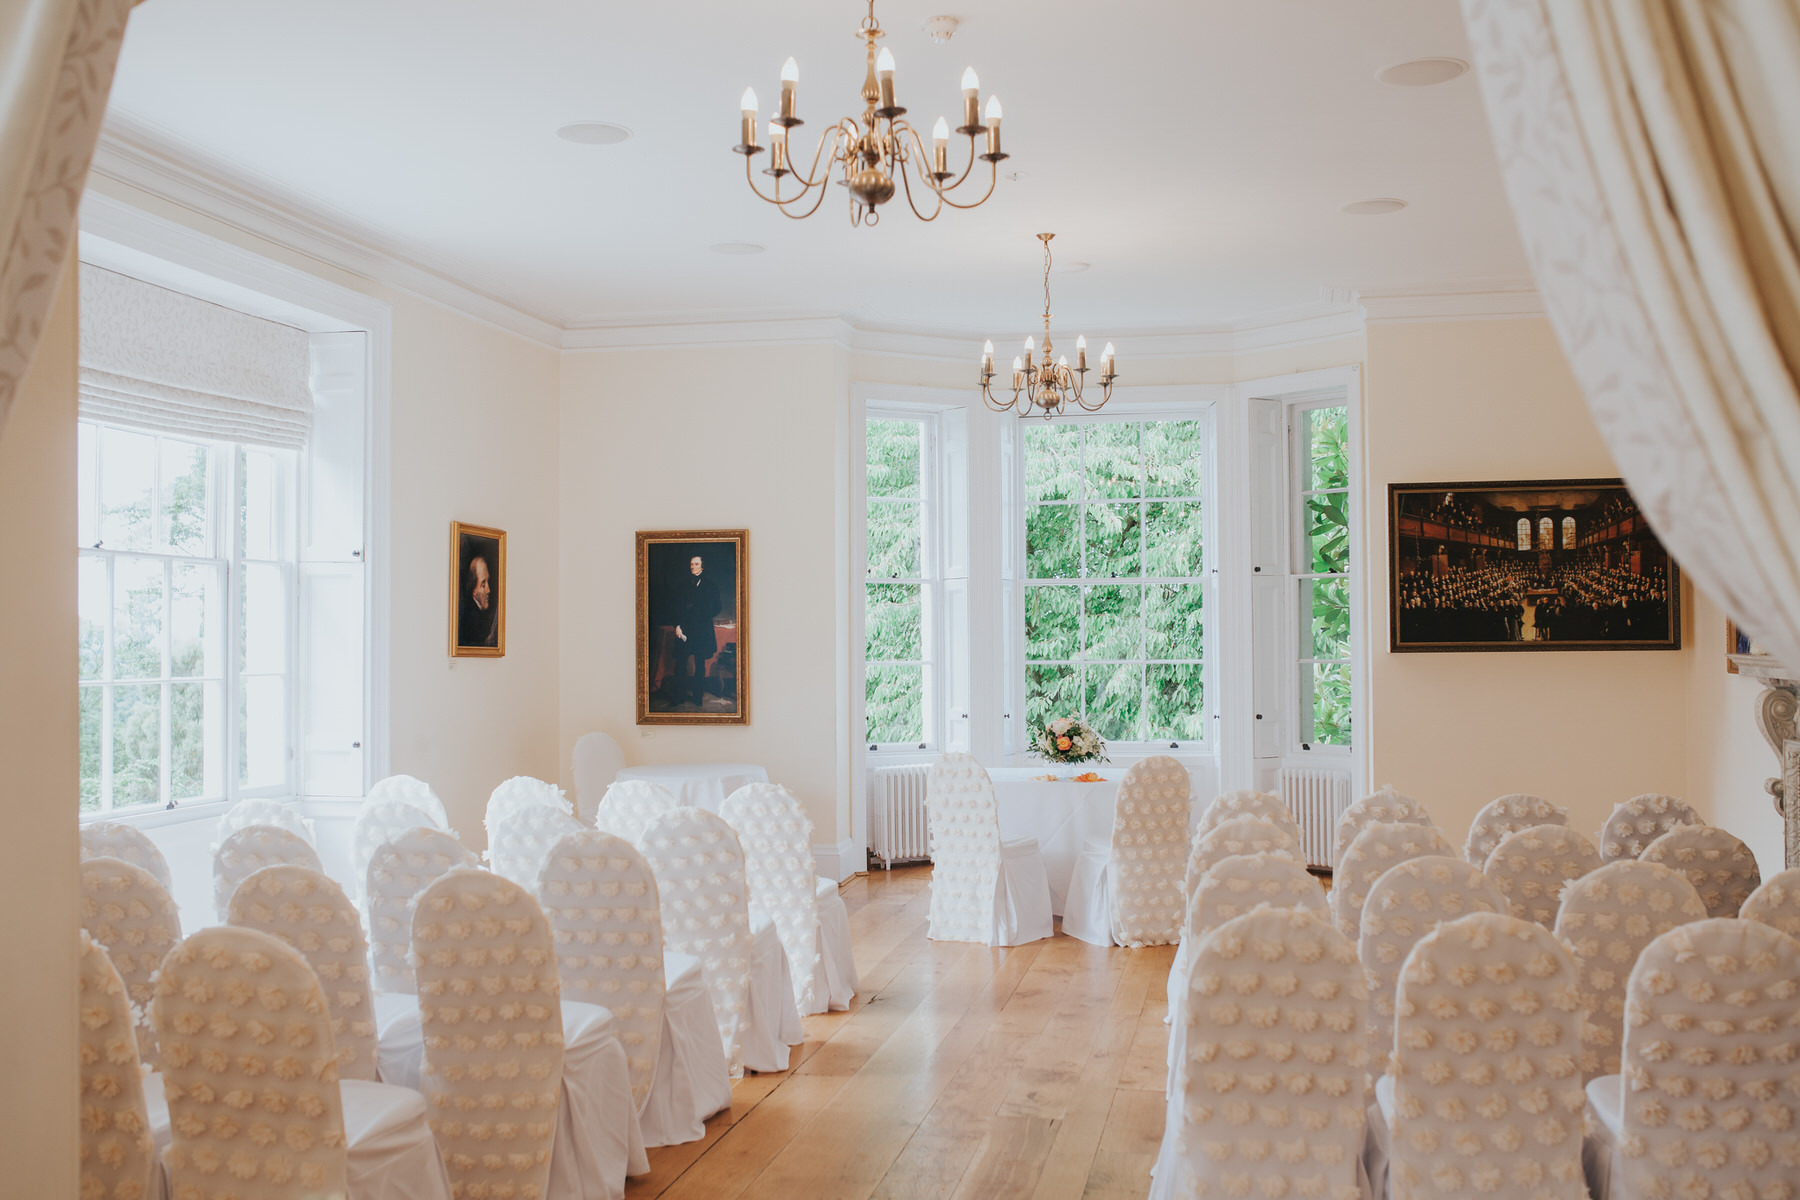 4-Pembroke Lodge wedding ceremony room Russell Suite.jpg